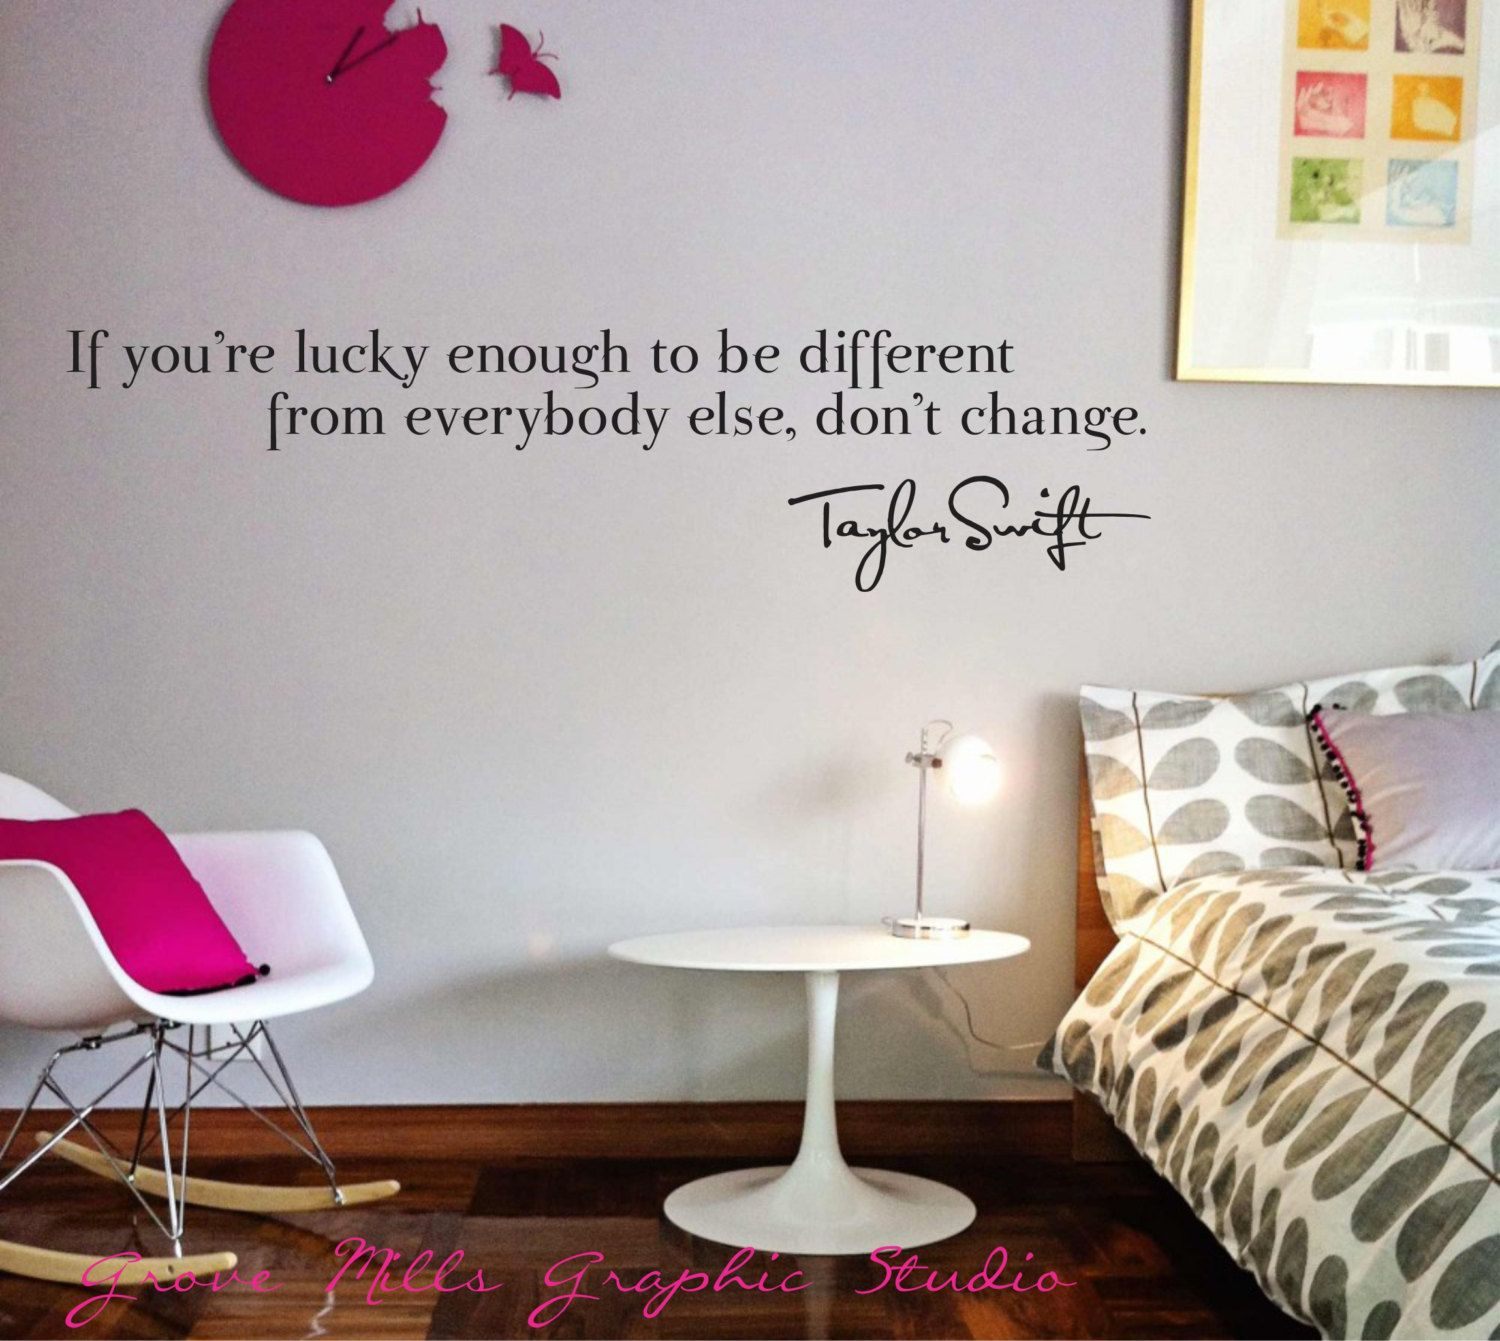 Taylor Swift Wall Quote